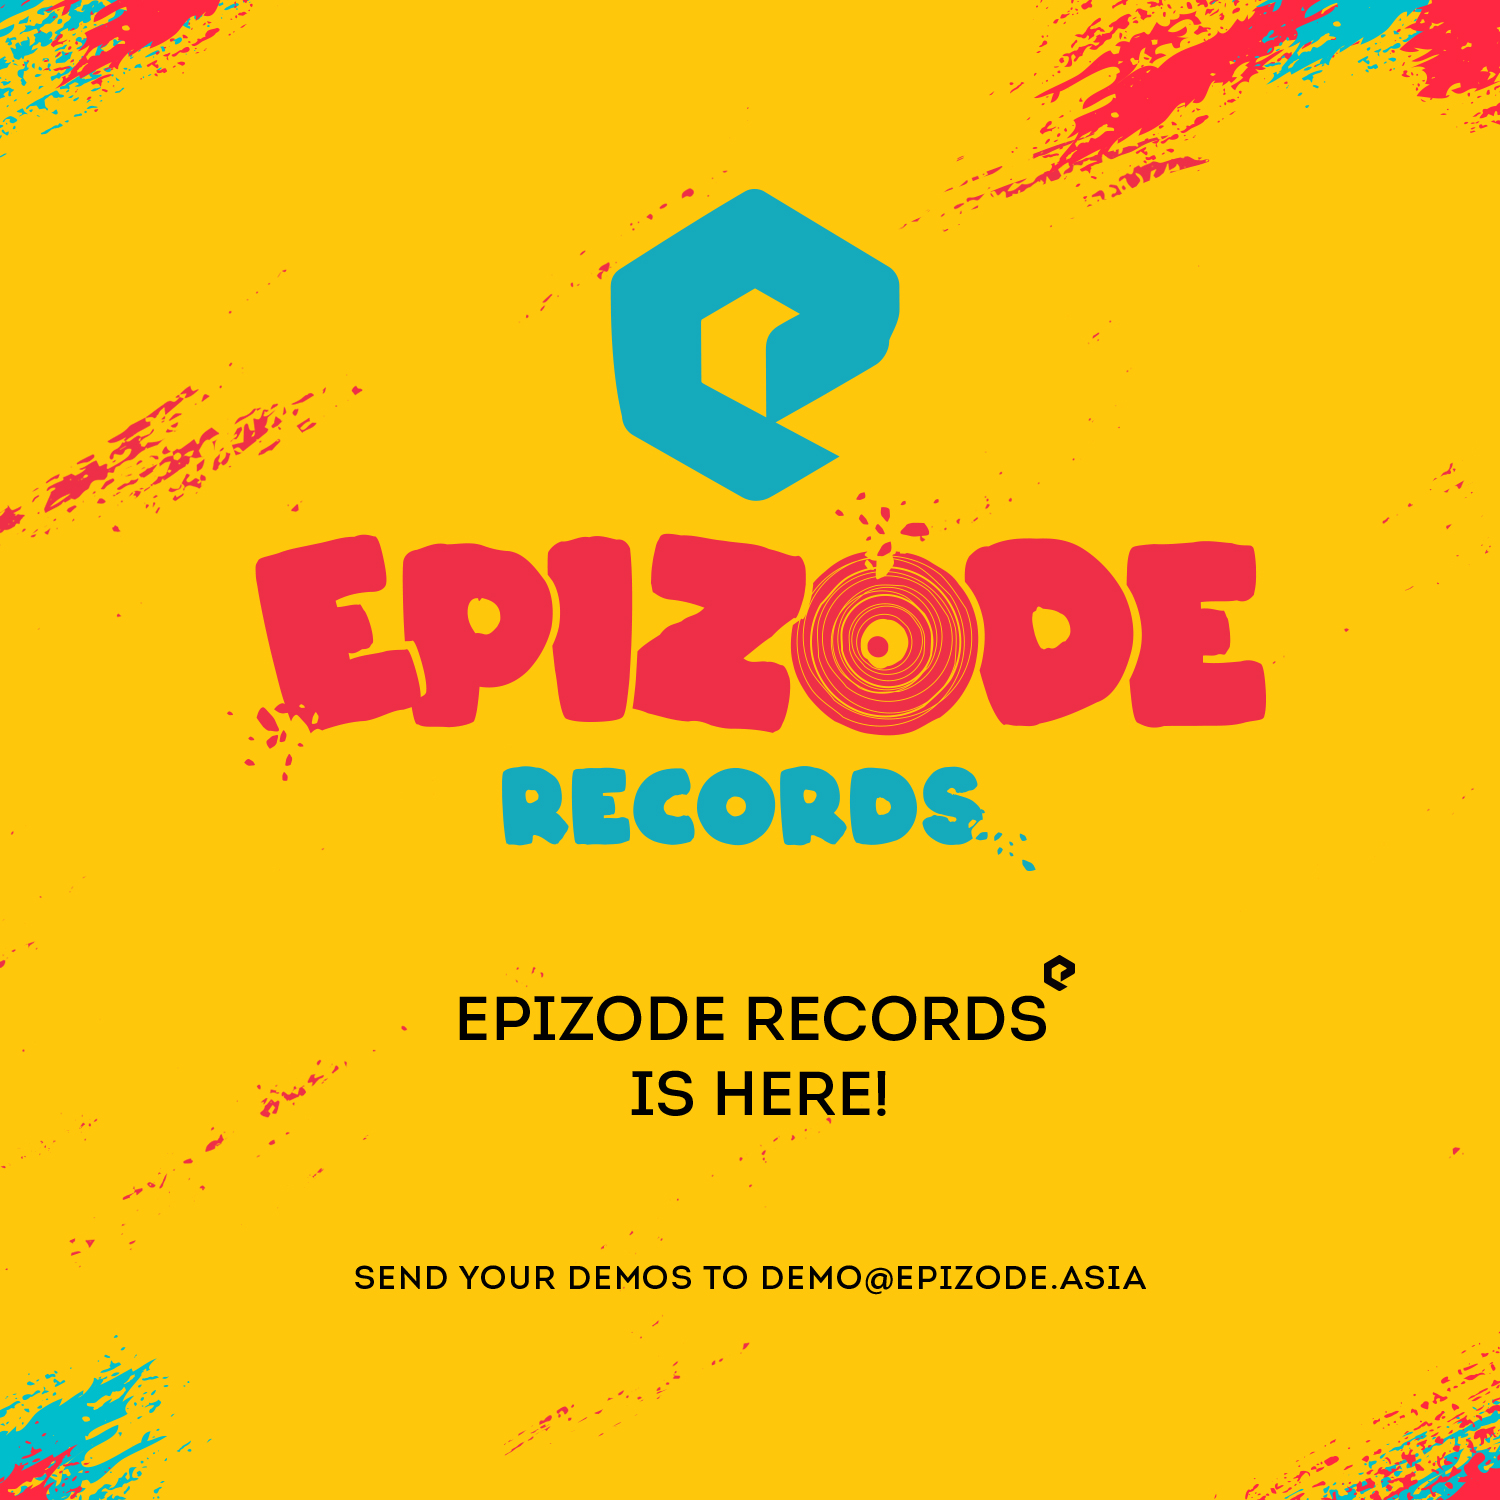 EPIZODE is launching its own label, send your demos!